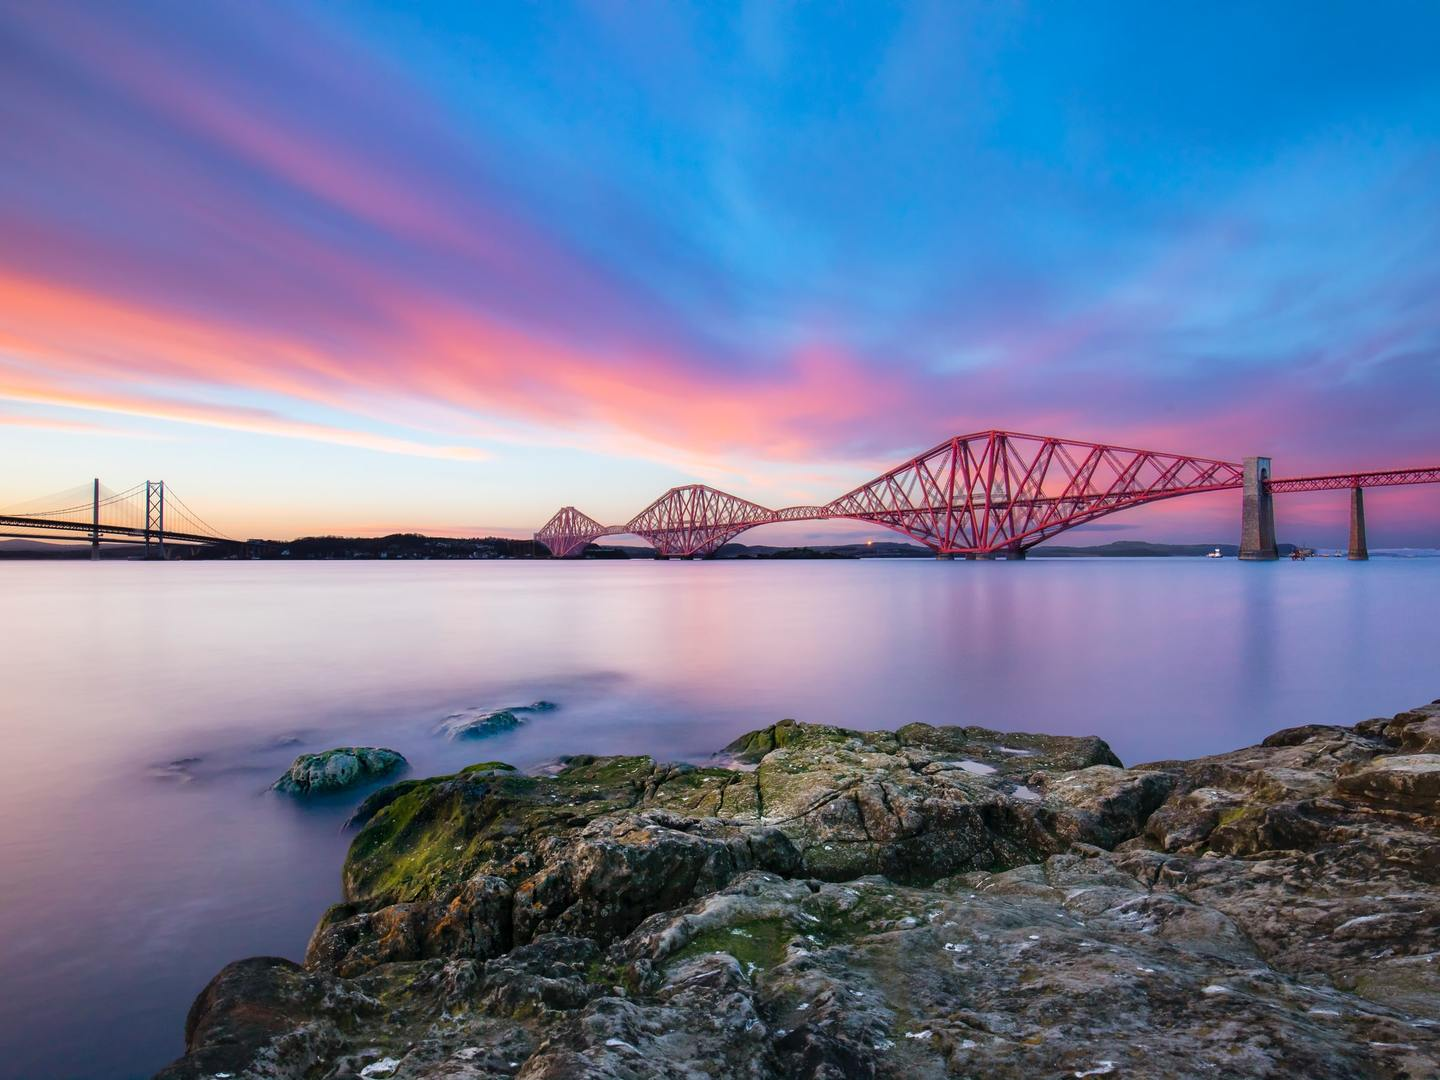 Sunset over the bridge at South Queensferry, UK